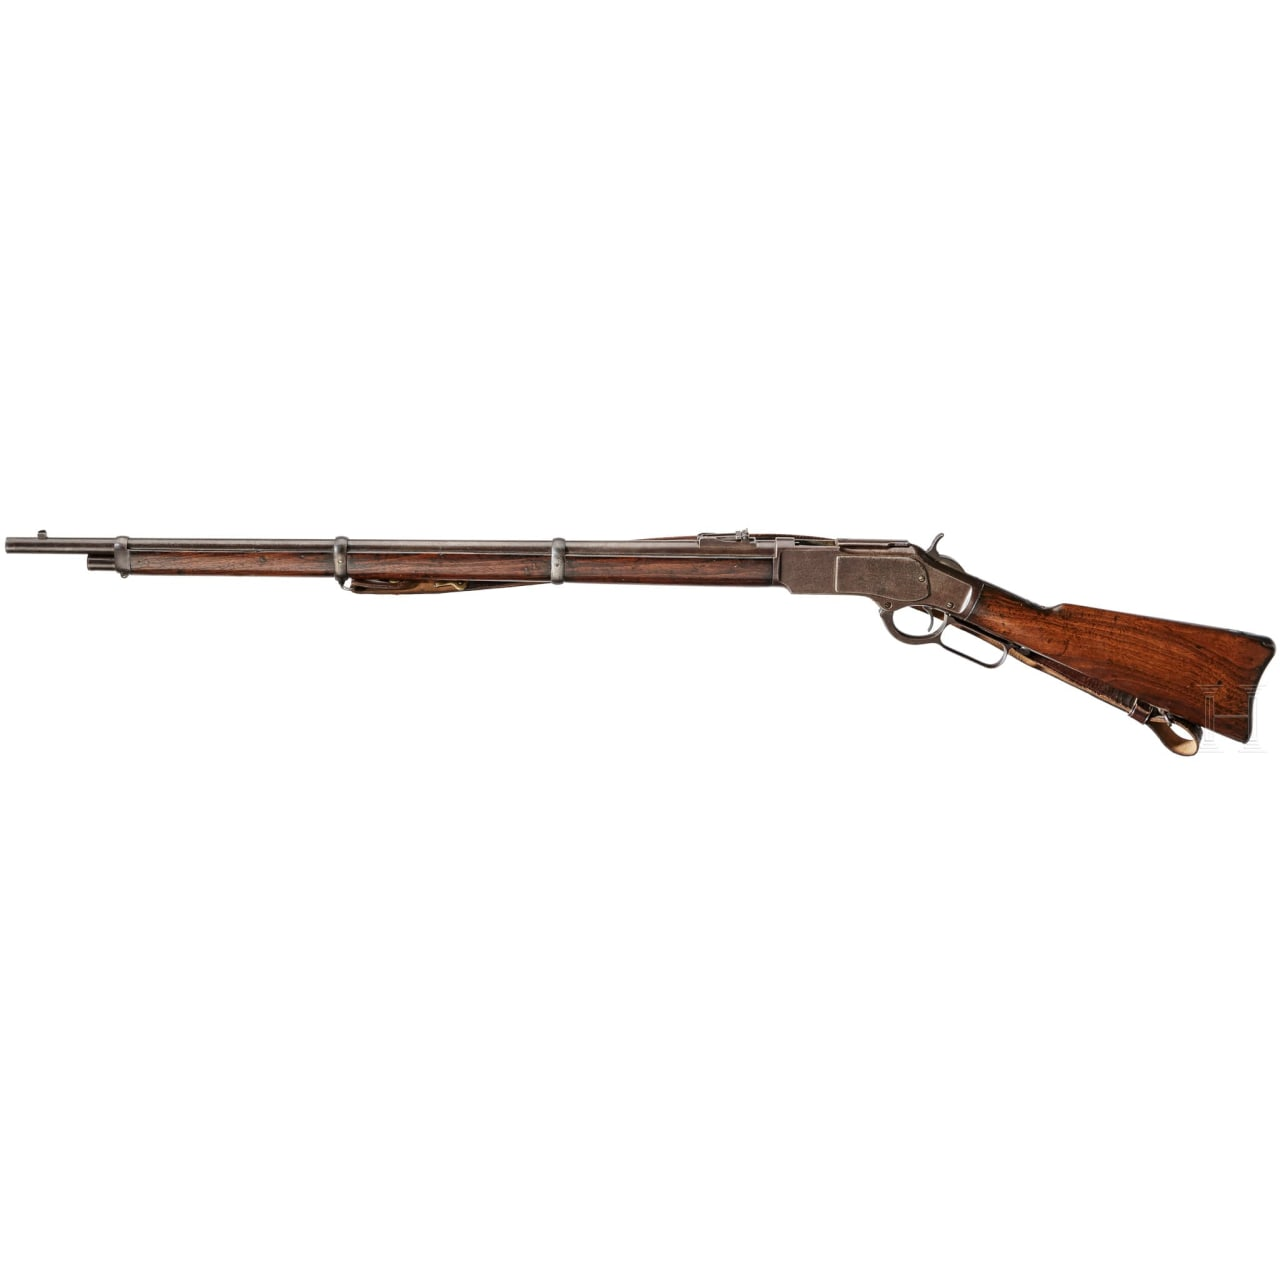 Winchester Mod. 1873 Musket